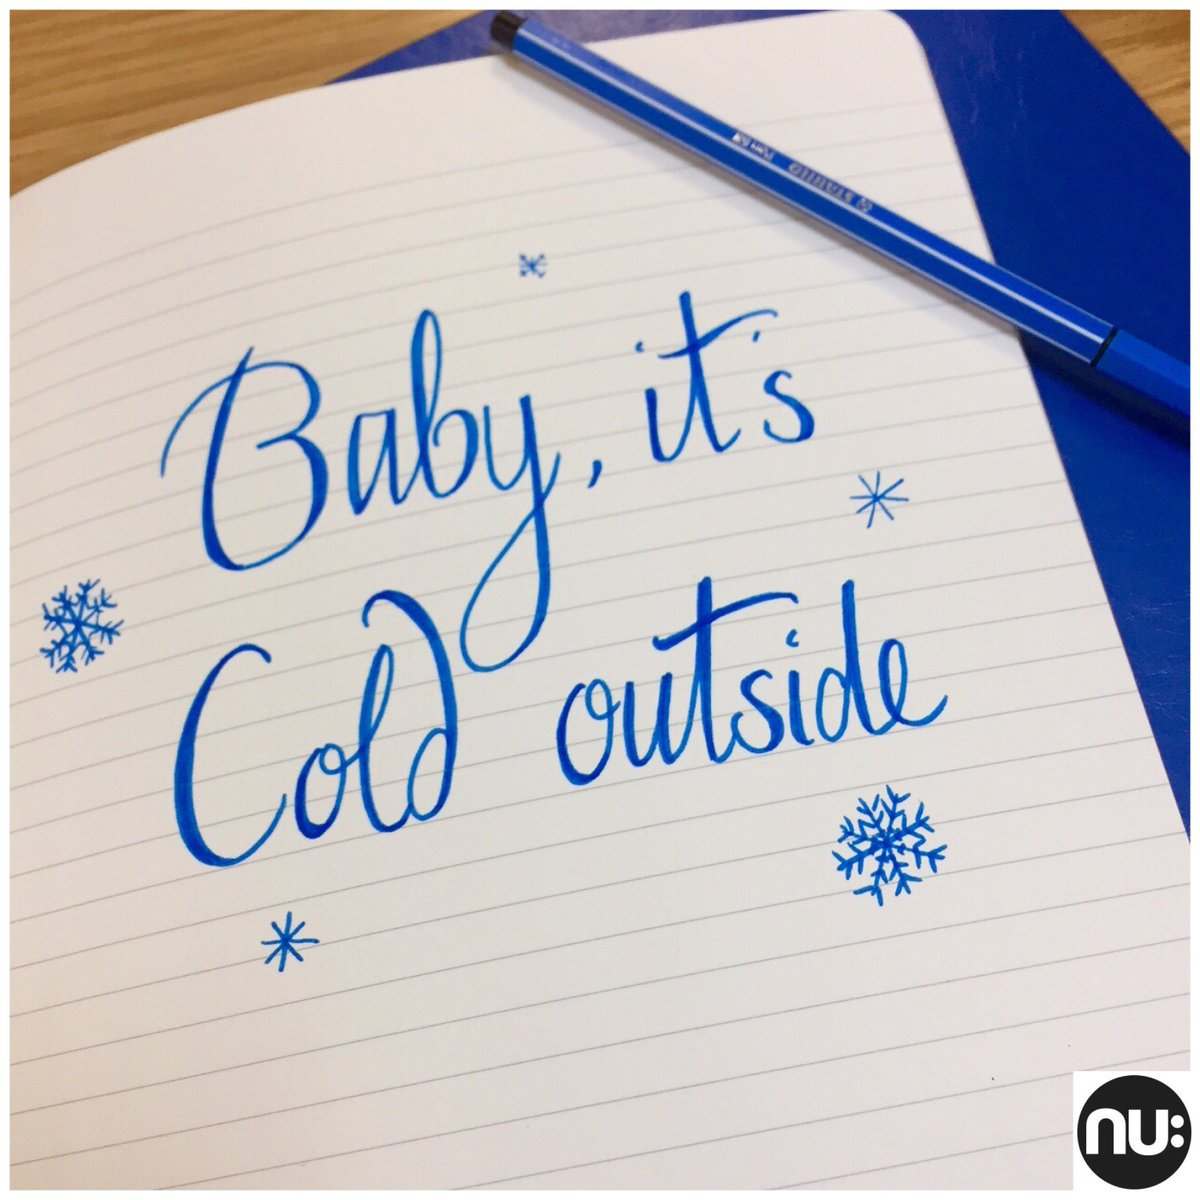 Brrrrr, its cold ❄️☃️ that's our #Friday...